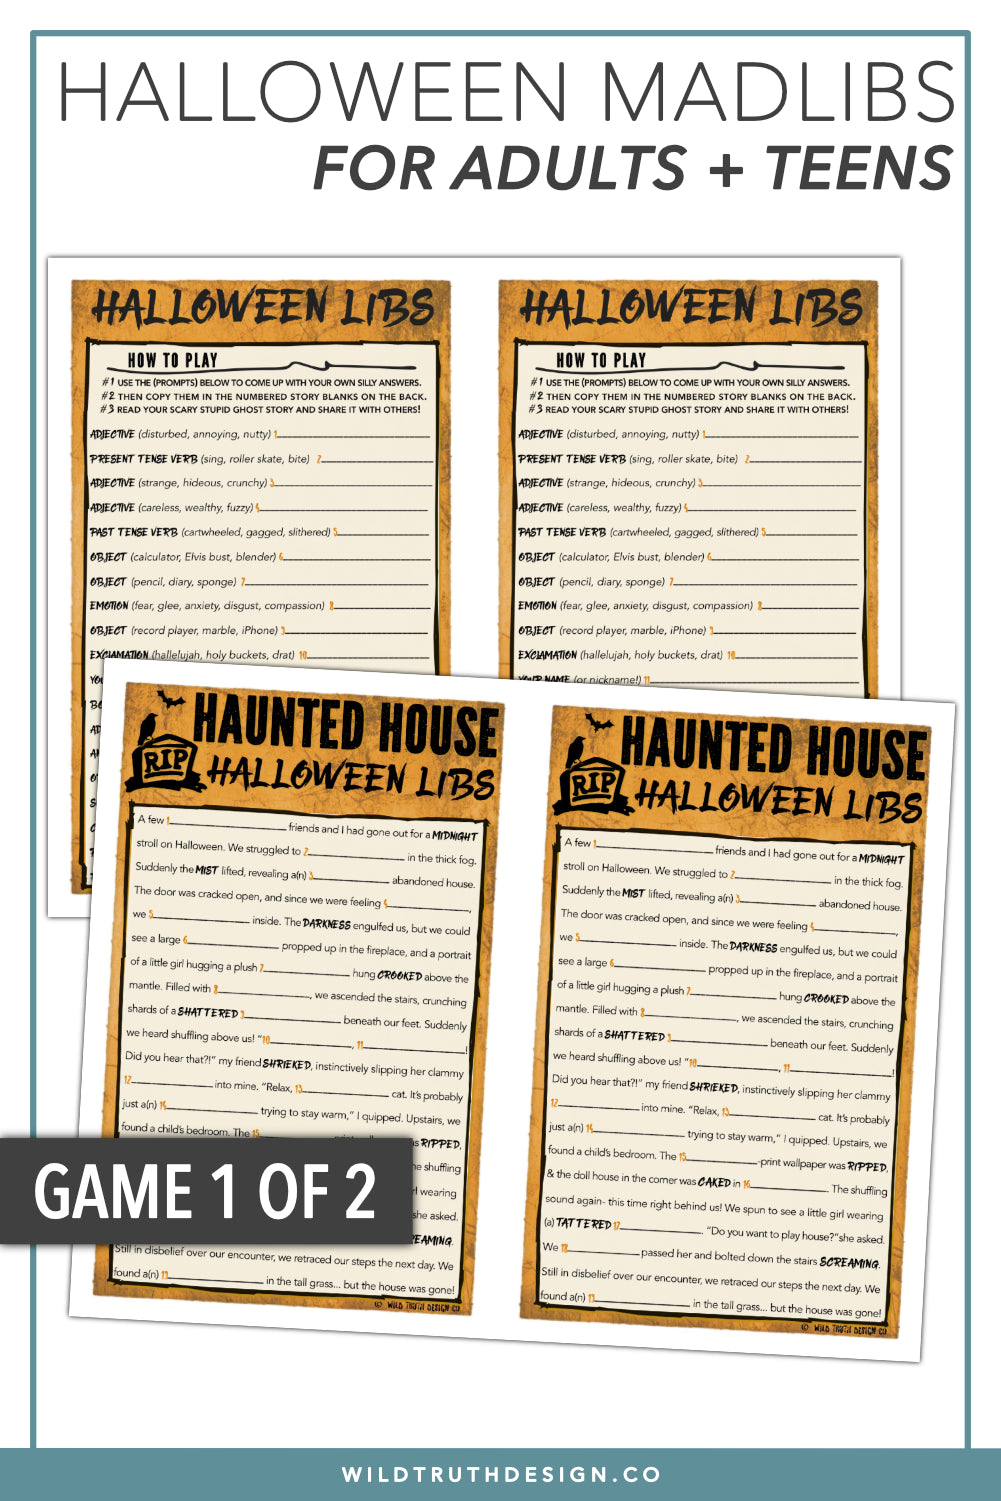 halloween mad libs for adults teens fun party games printables jpg 1001x1501 adult halloween games